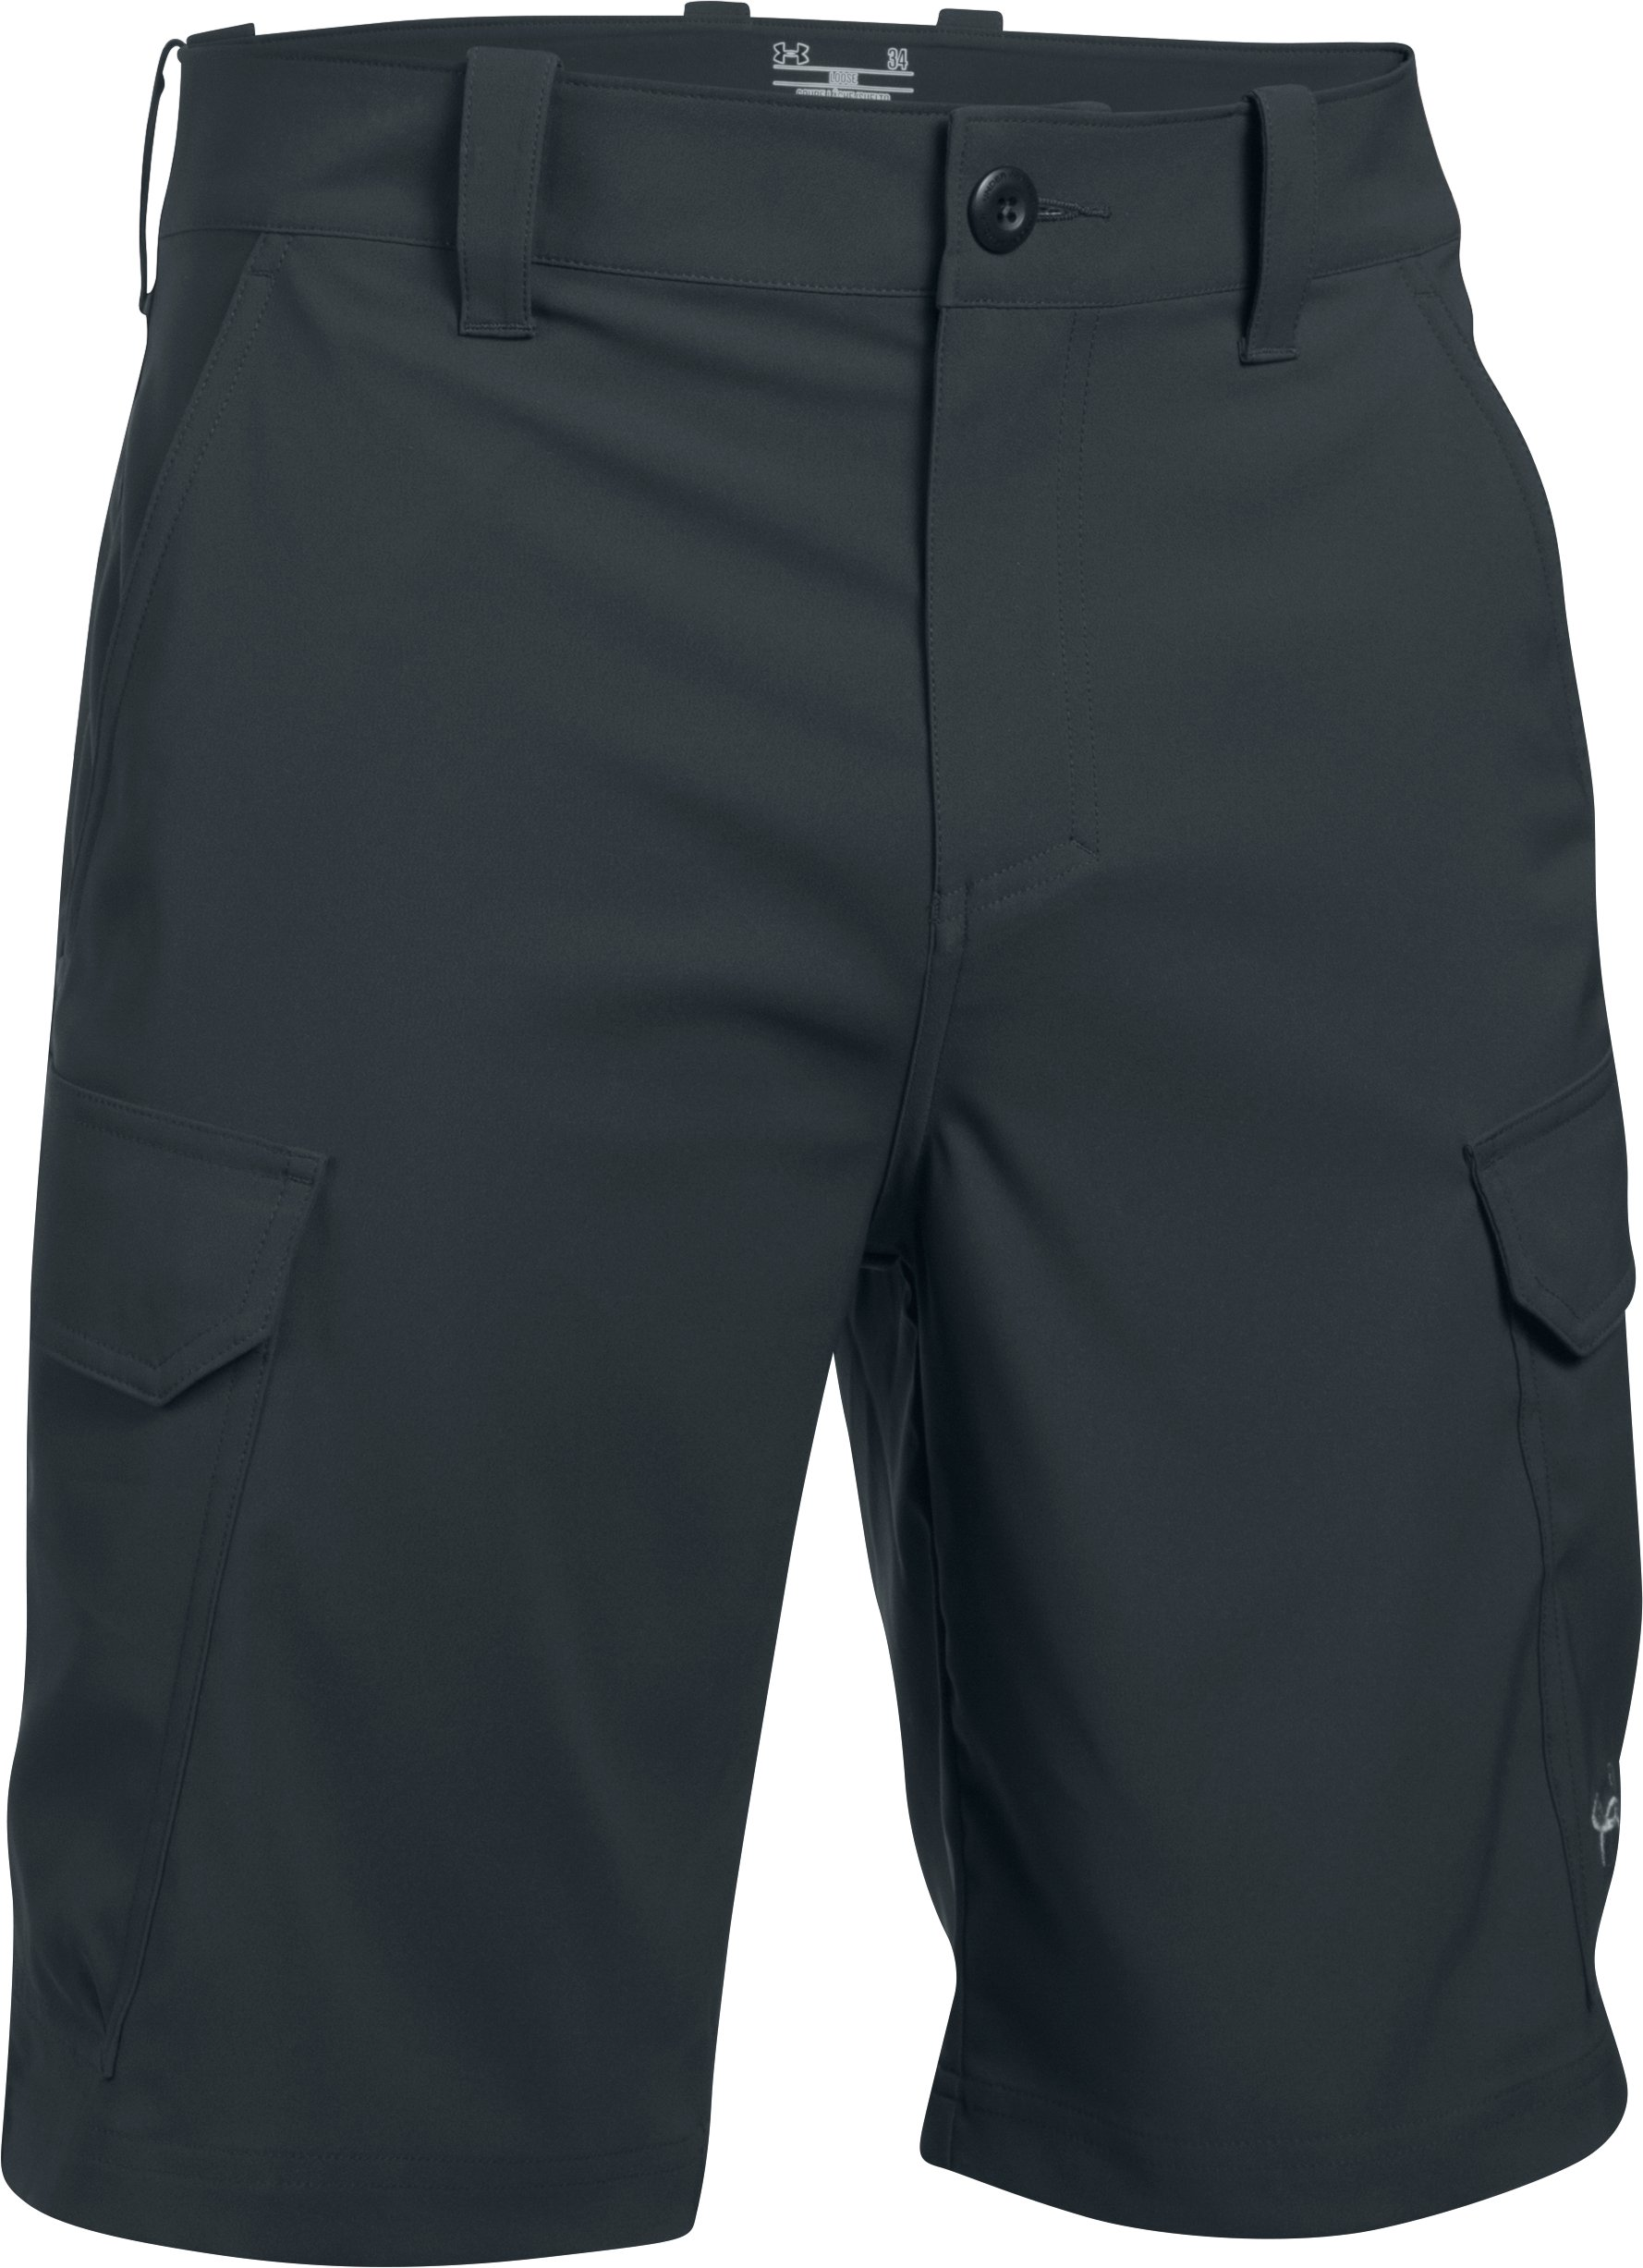 Men's UA Fish Hunter Cargo Shorts, ANTHRACITE, undefined